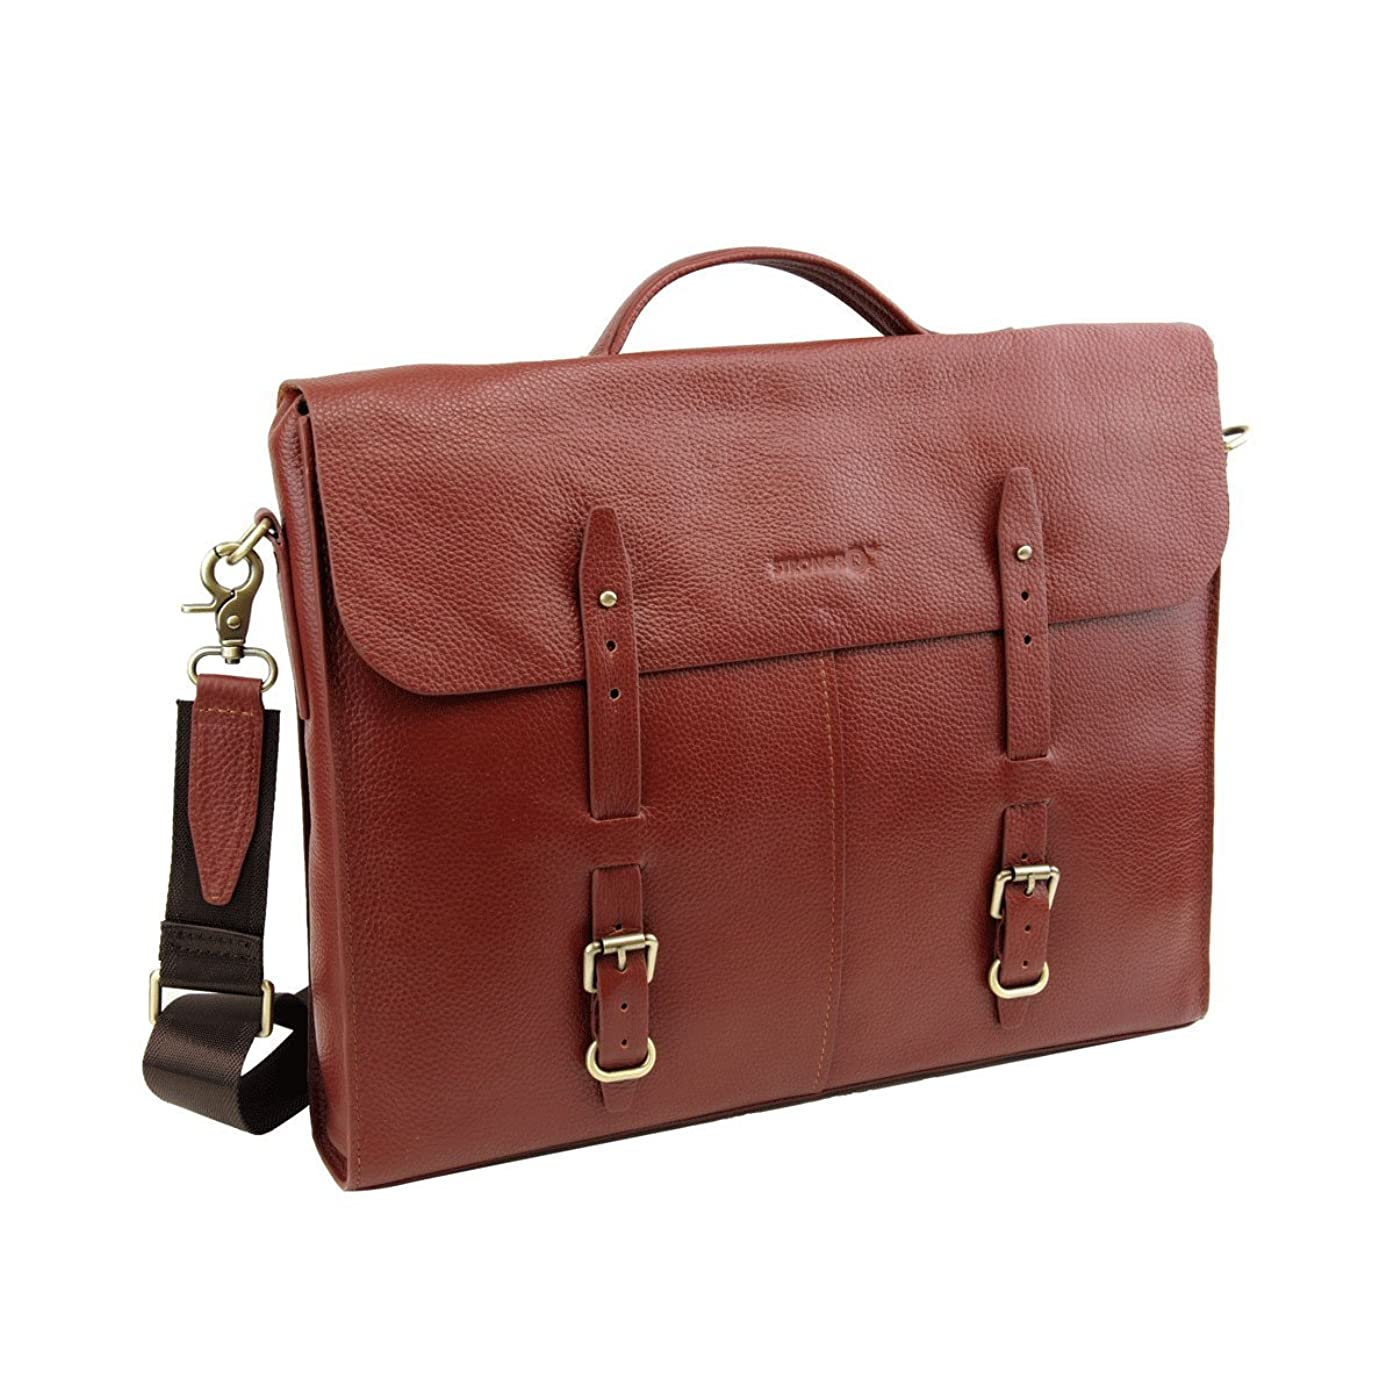 Strongrr 15-in Single Piece Maroon Professor Briefcase, Faux Leather, Hardwood Construction, Solid Pattern, Locking, lightweight, Comfortable Grip Handle, Briefcases, Leather Briefcase